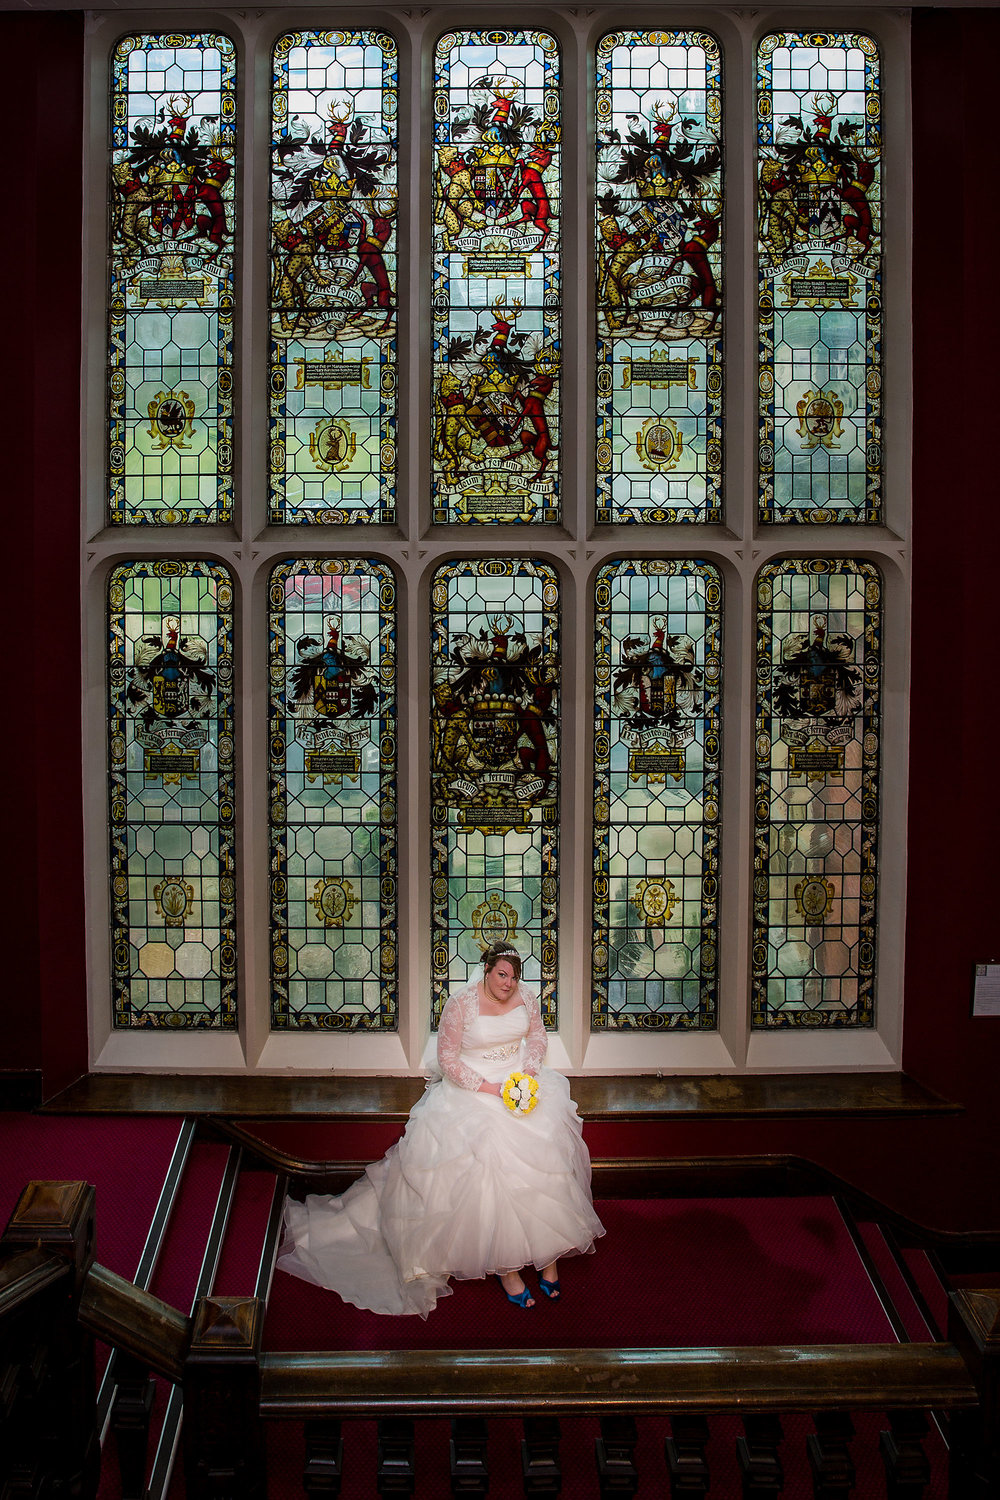 The main staircase and stained glass window make for stunning images.